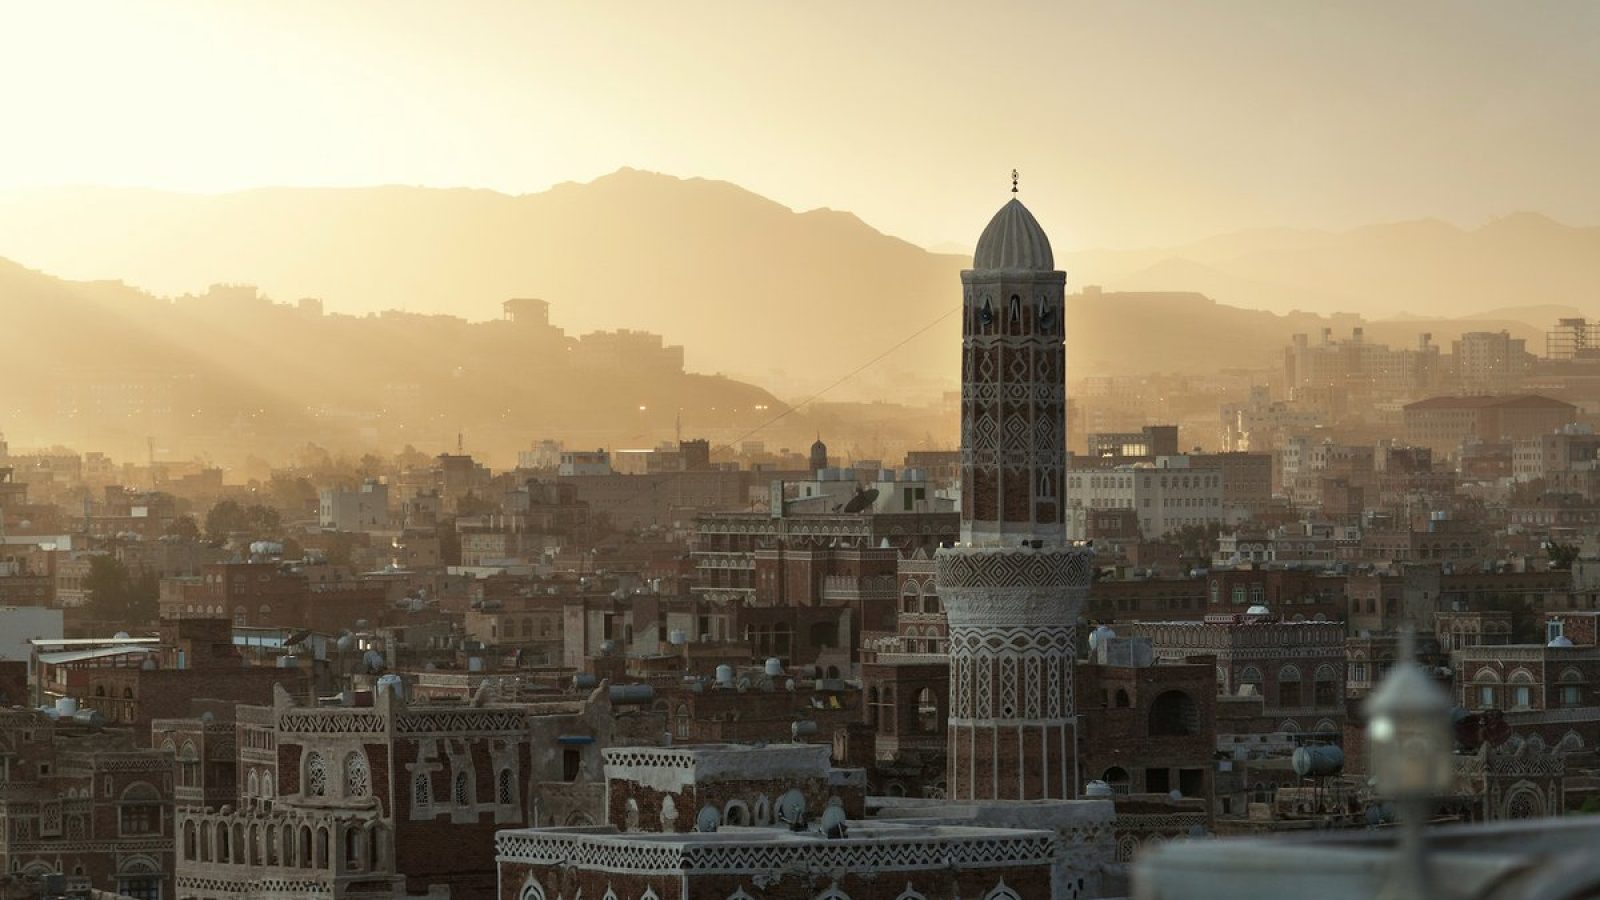 A cityscape during golden hour in Yemen